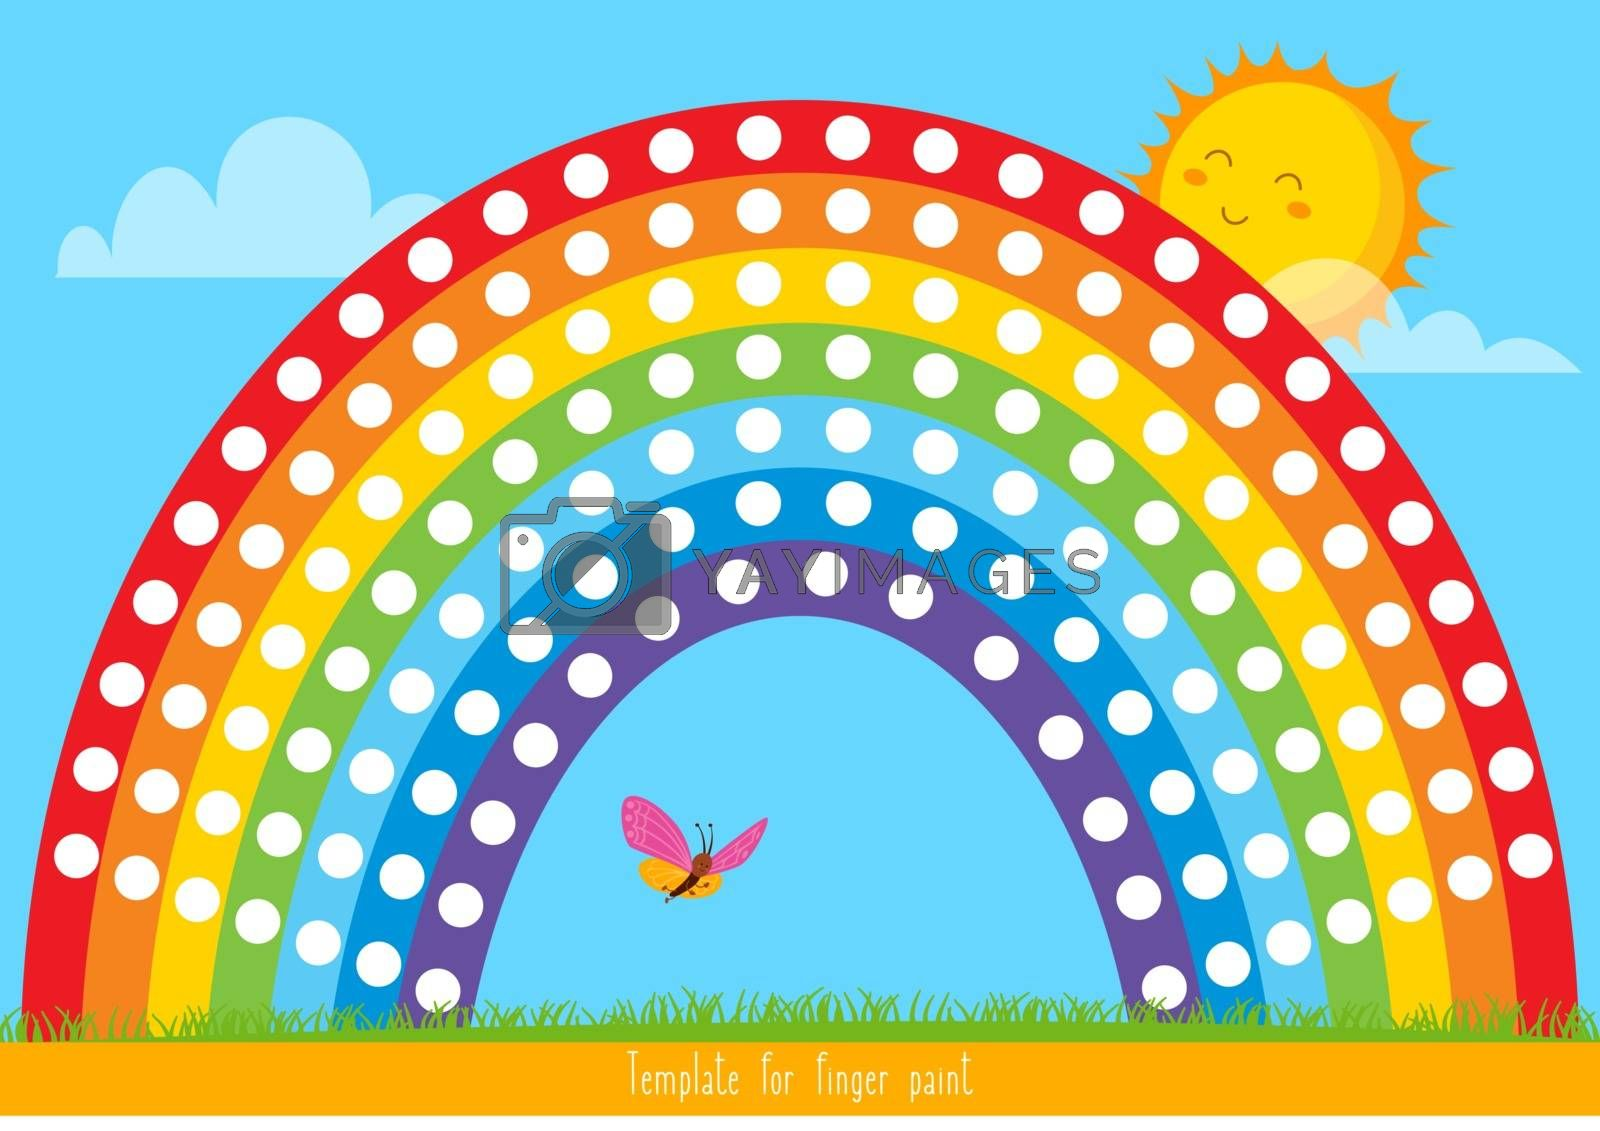 Template for finger paint. Printable for children's creativity. Vector illustration